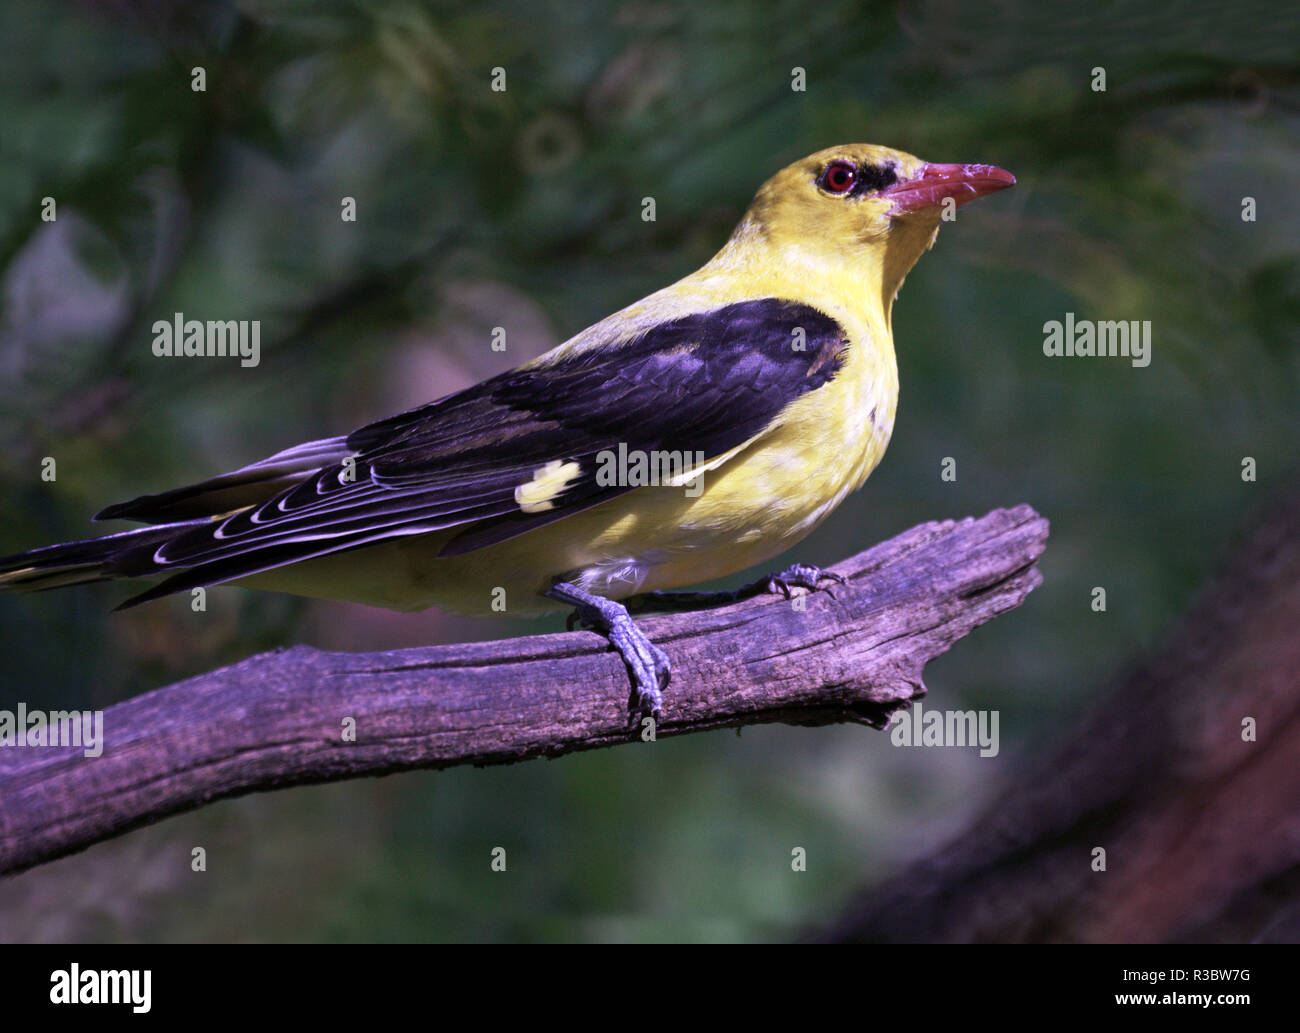 Male Golden Oriole (Oriolus oriolus).Similar in size to a European blackbird this bird in spite of its colors is difficult to see in the trees. - Stock Image